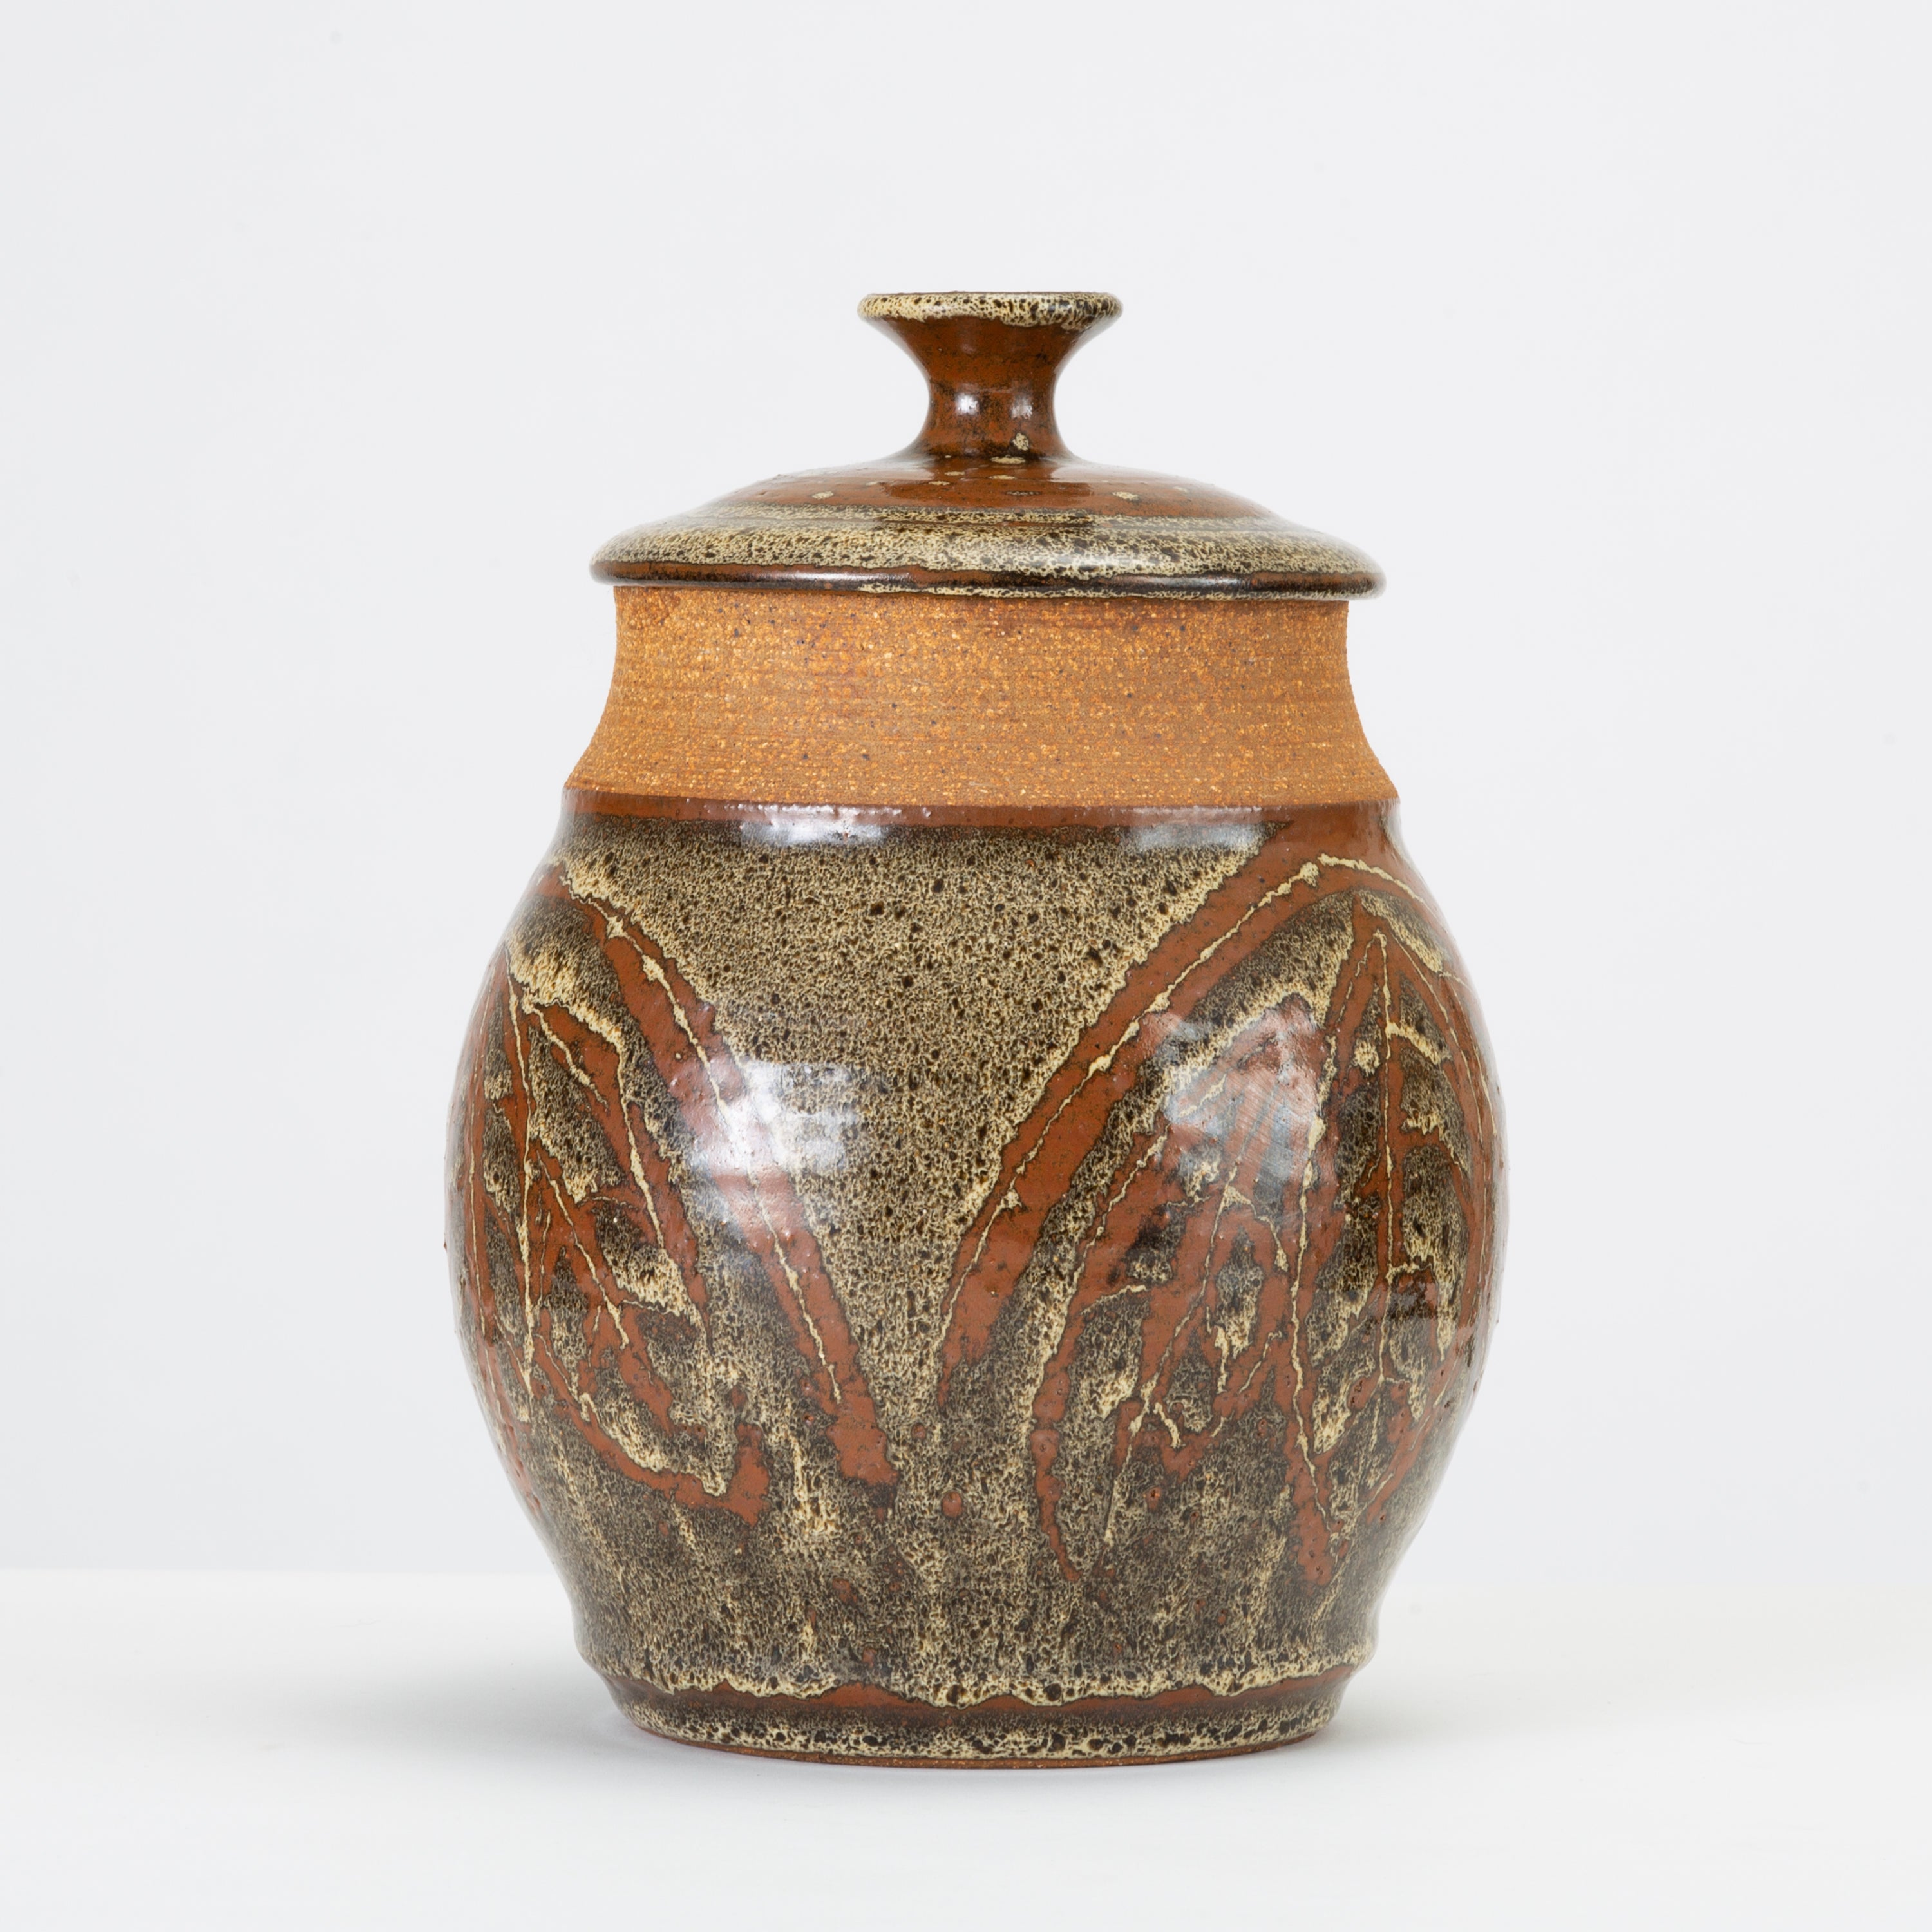 California Modern Studio Pottery Jar with Leaf Pattern by Don Jennings